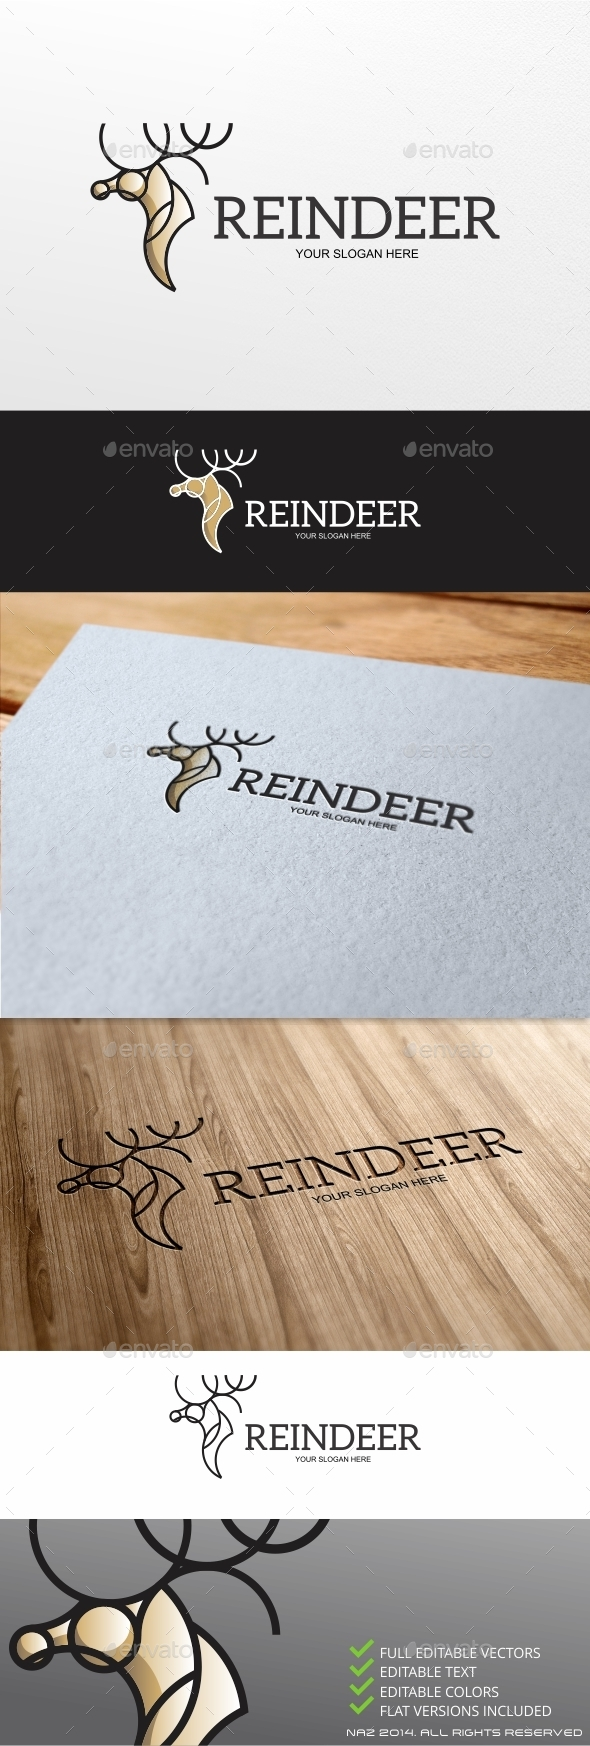 Reindeer Logo - Animals Logo Templates